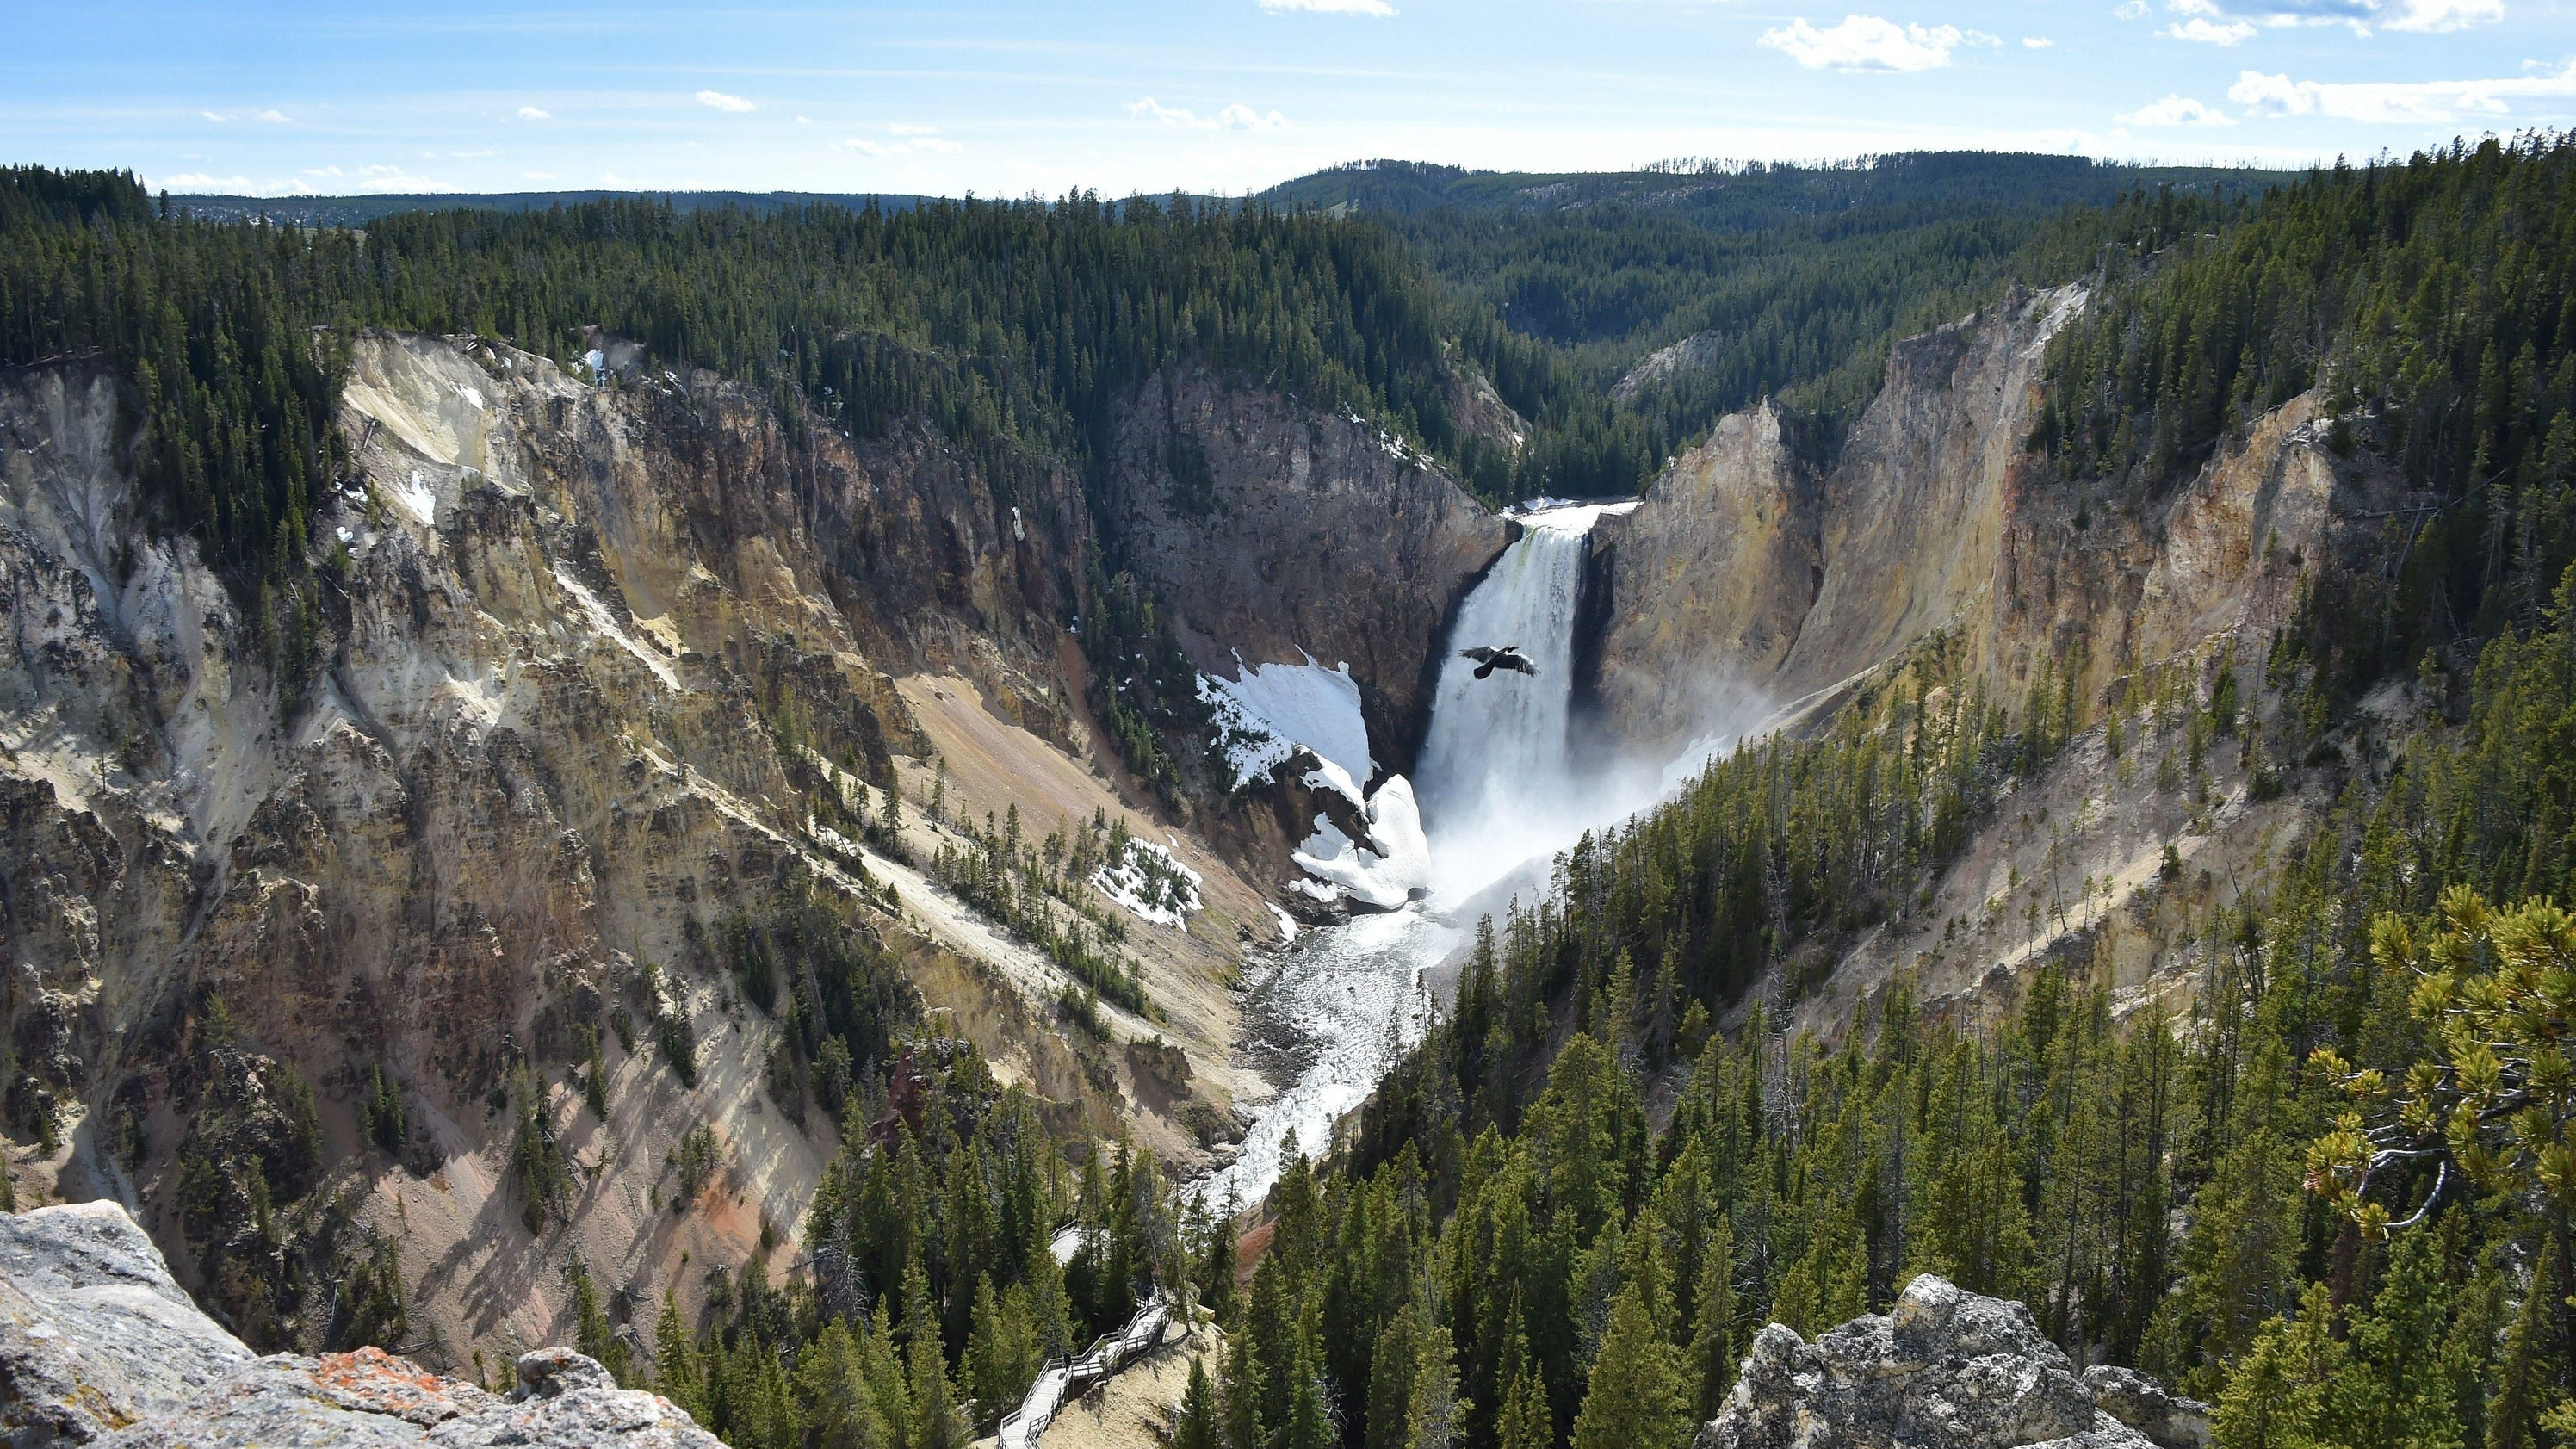 Yellowstone National Park: Tips for exploring the park